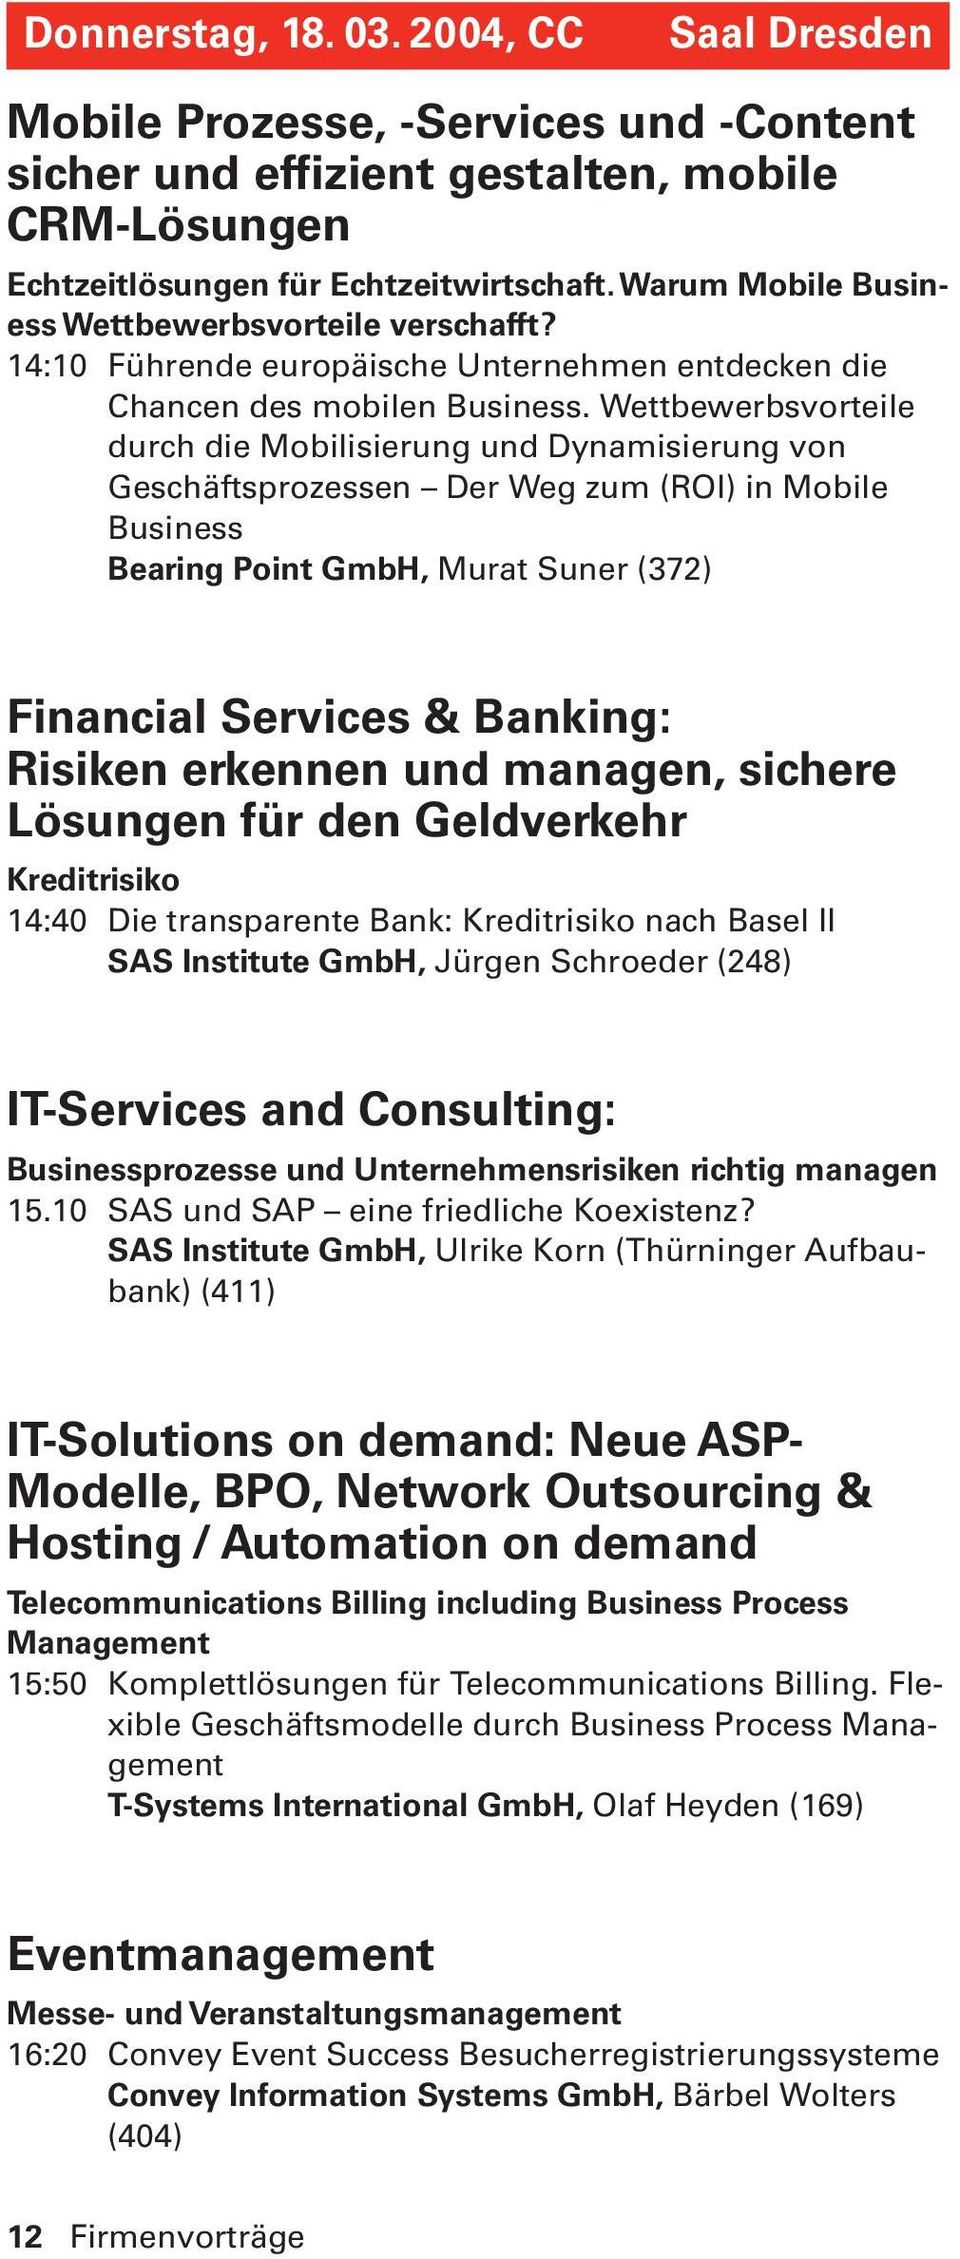 Wettbewerbsvorteile durch die Mobilisierung und Dynamisierung von Geschäftsprozessen Der Weg zum (ROI) in Mobile Business Bearing Point GmbH, Murat Suner (372) Financial Services & Banking: Risiken